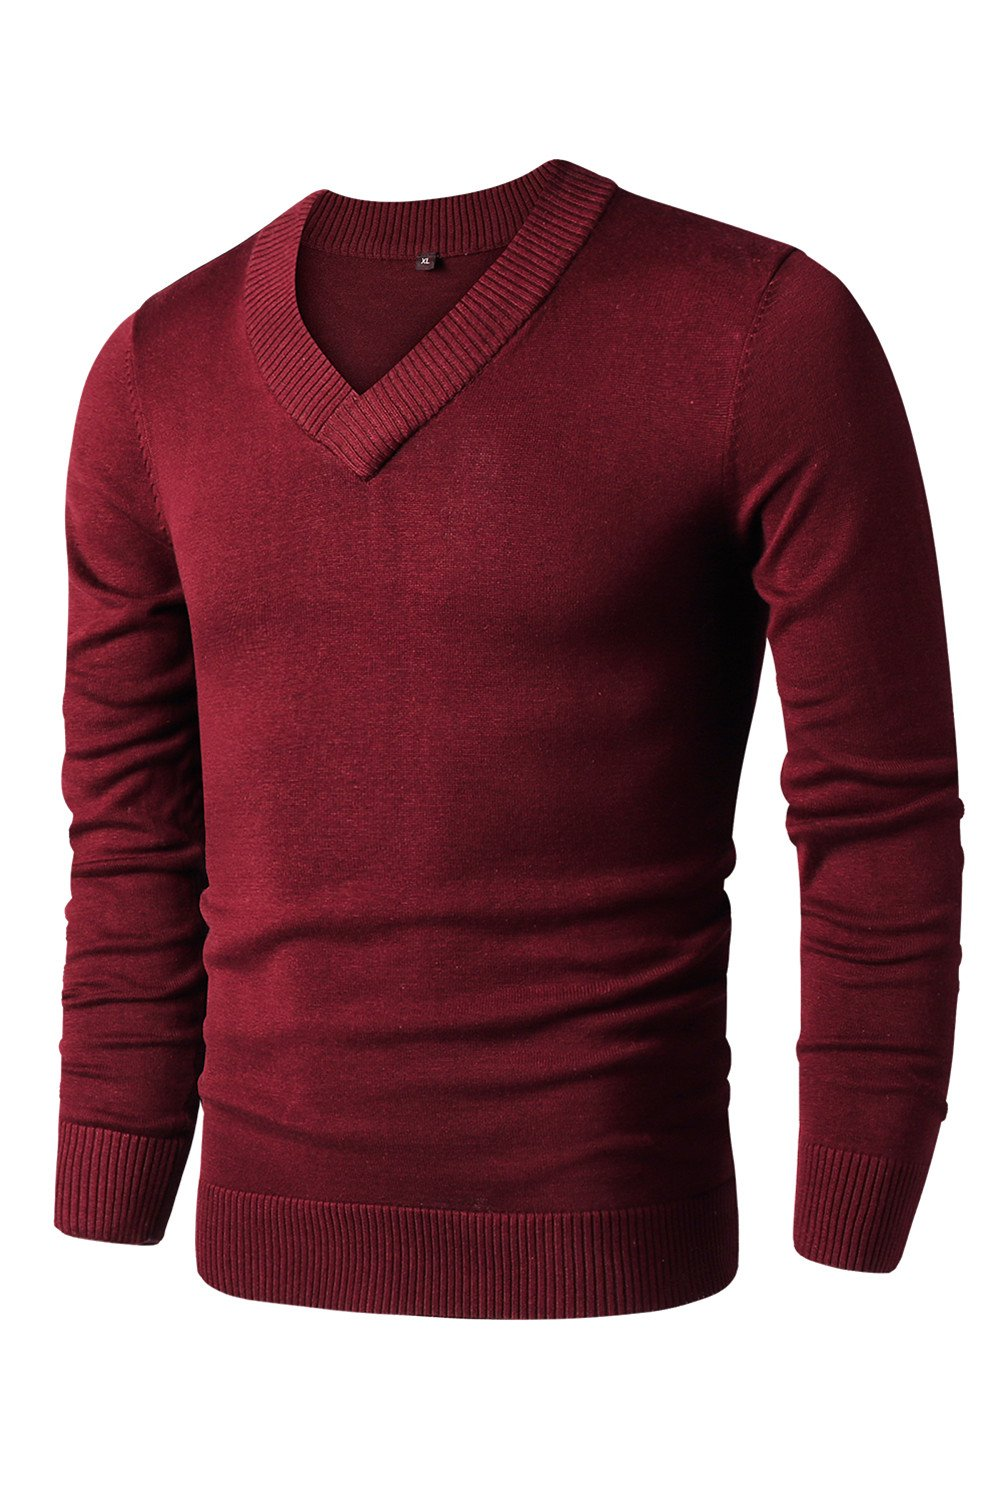 LTIFONE Mens Slim Comfortably Knitted Long Sleeve V-Neck Sweaters (XL,Red)